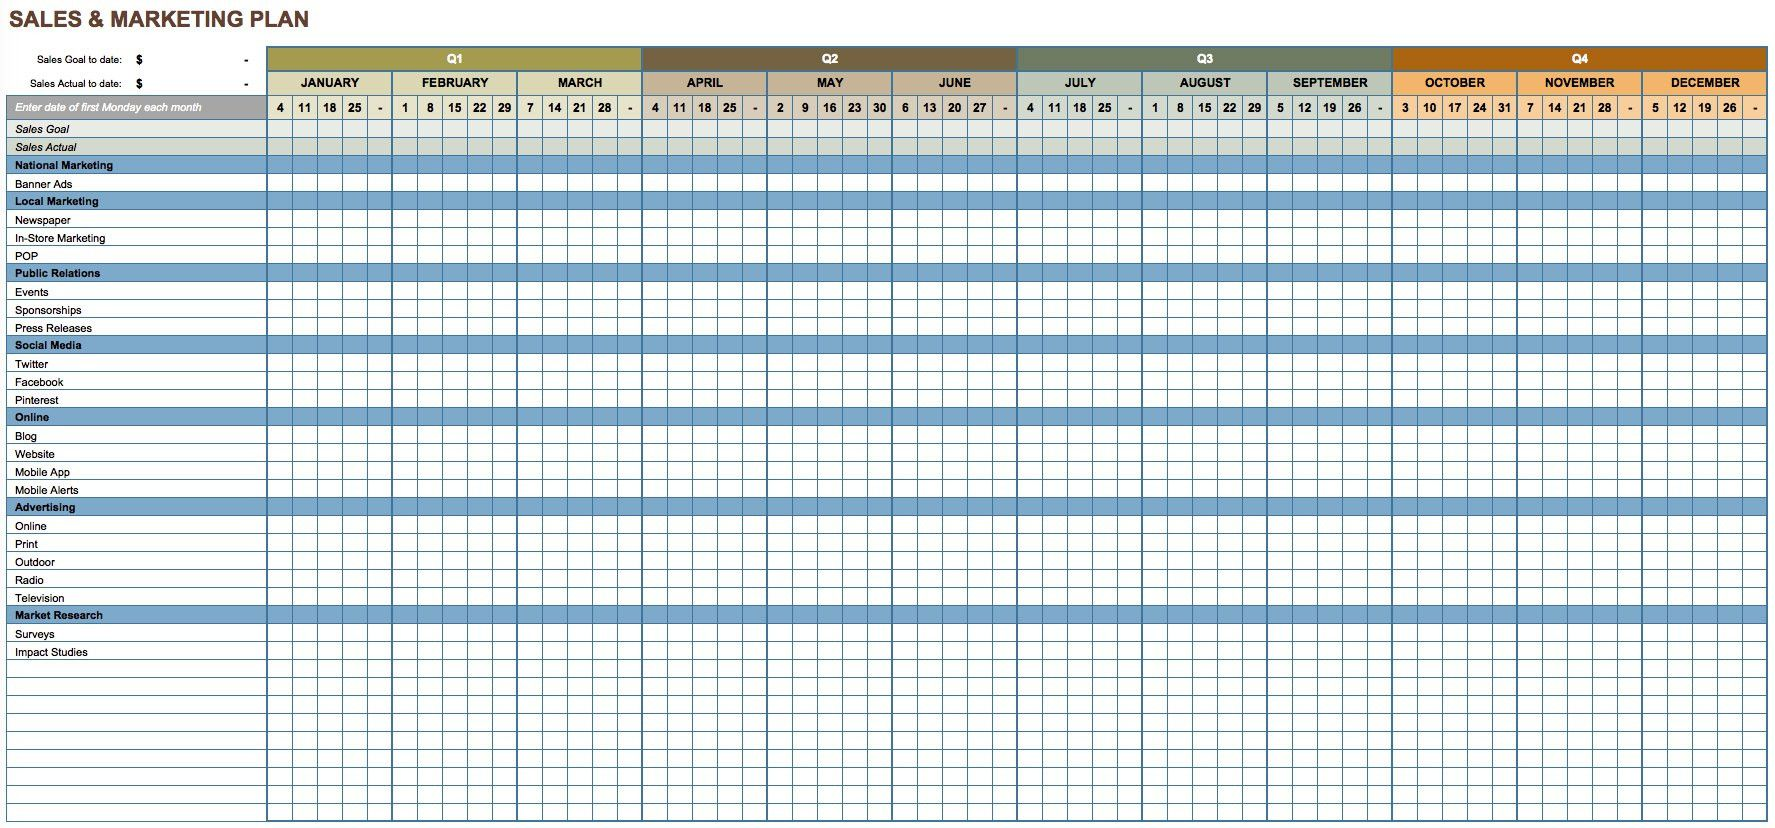 Advertising Plan Template Best Of Free Marketing Plan Templates For Excel Smartsheet In 2020 Action Plan Template Marketing Plan Template Advertising Plan